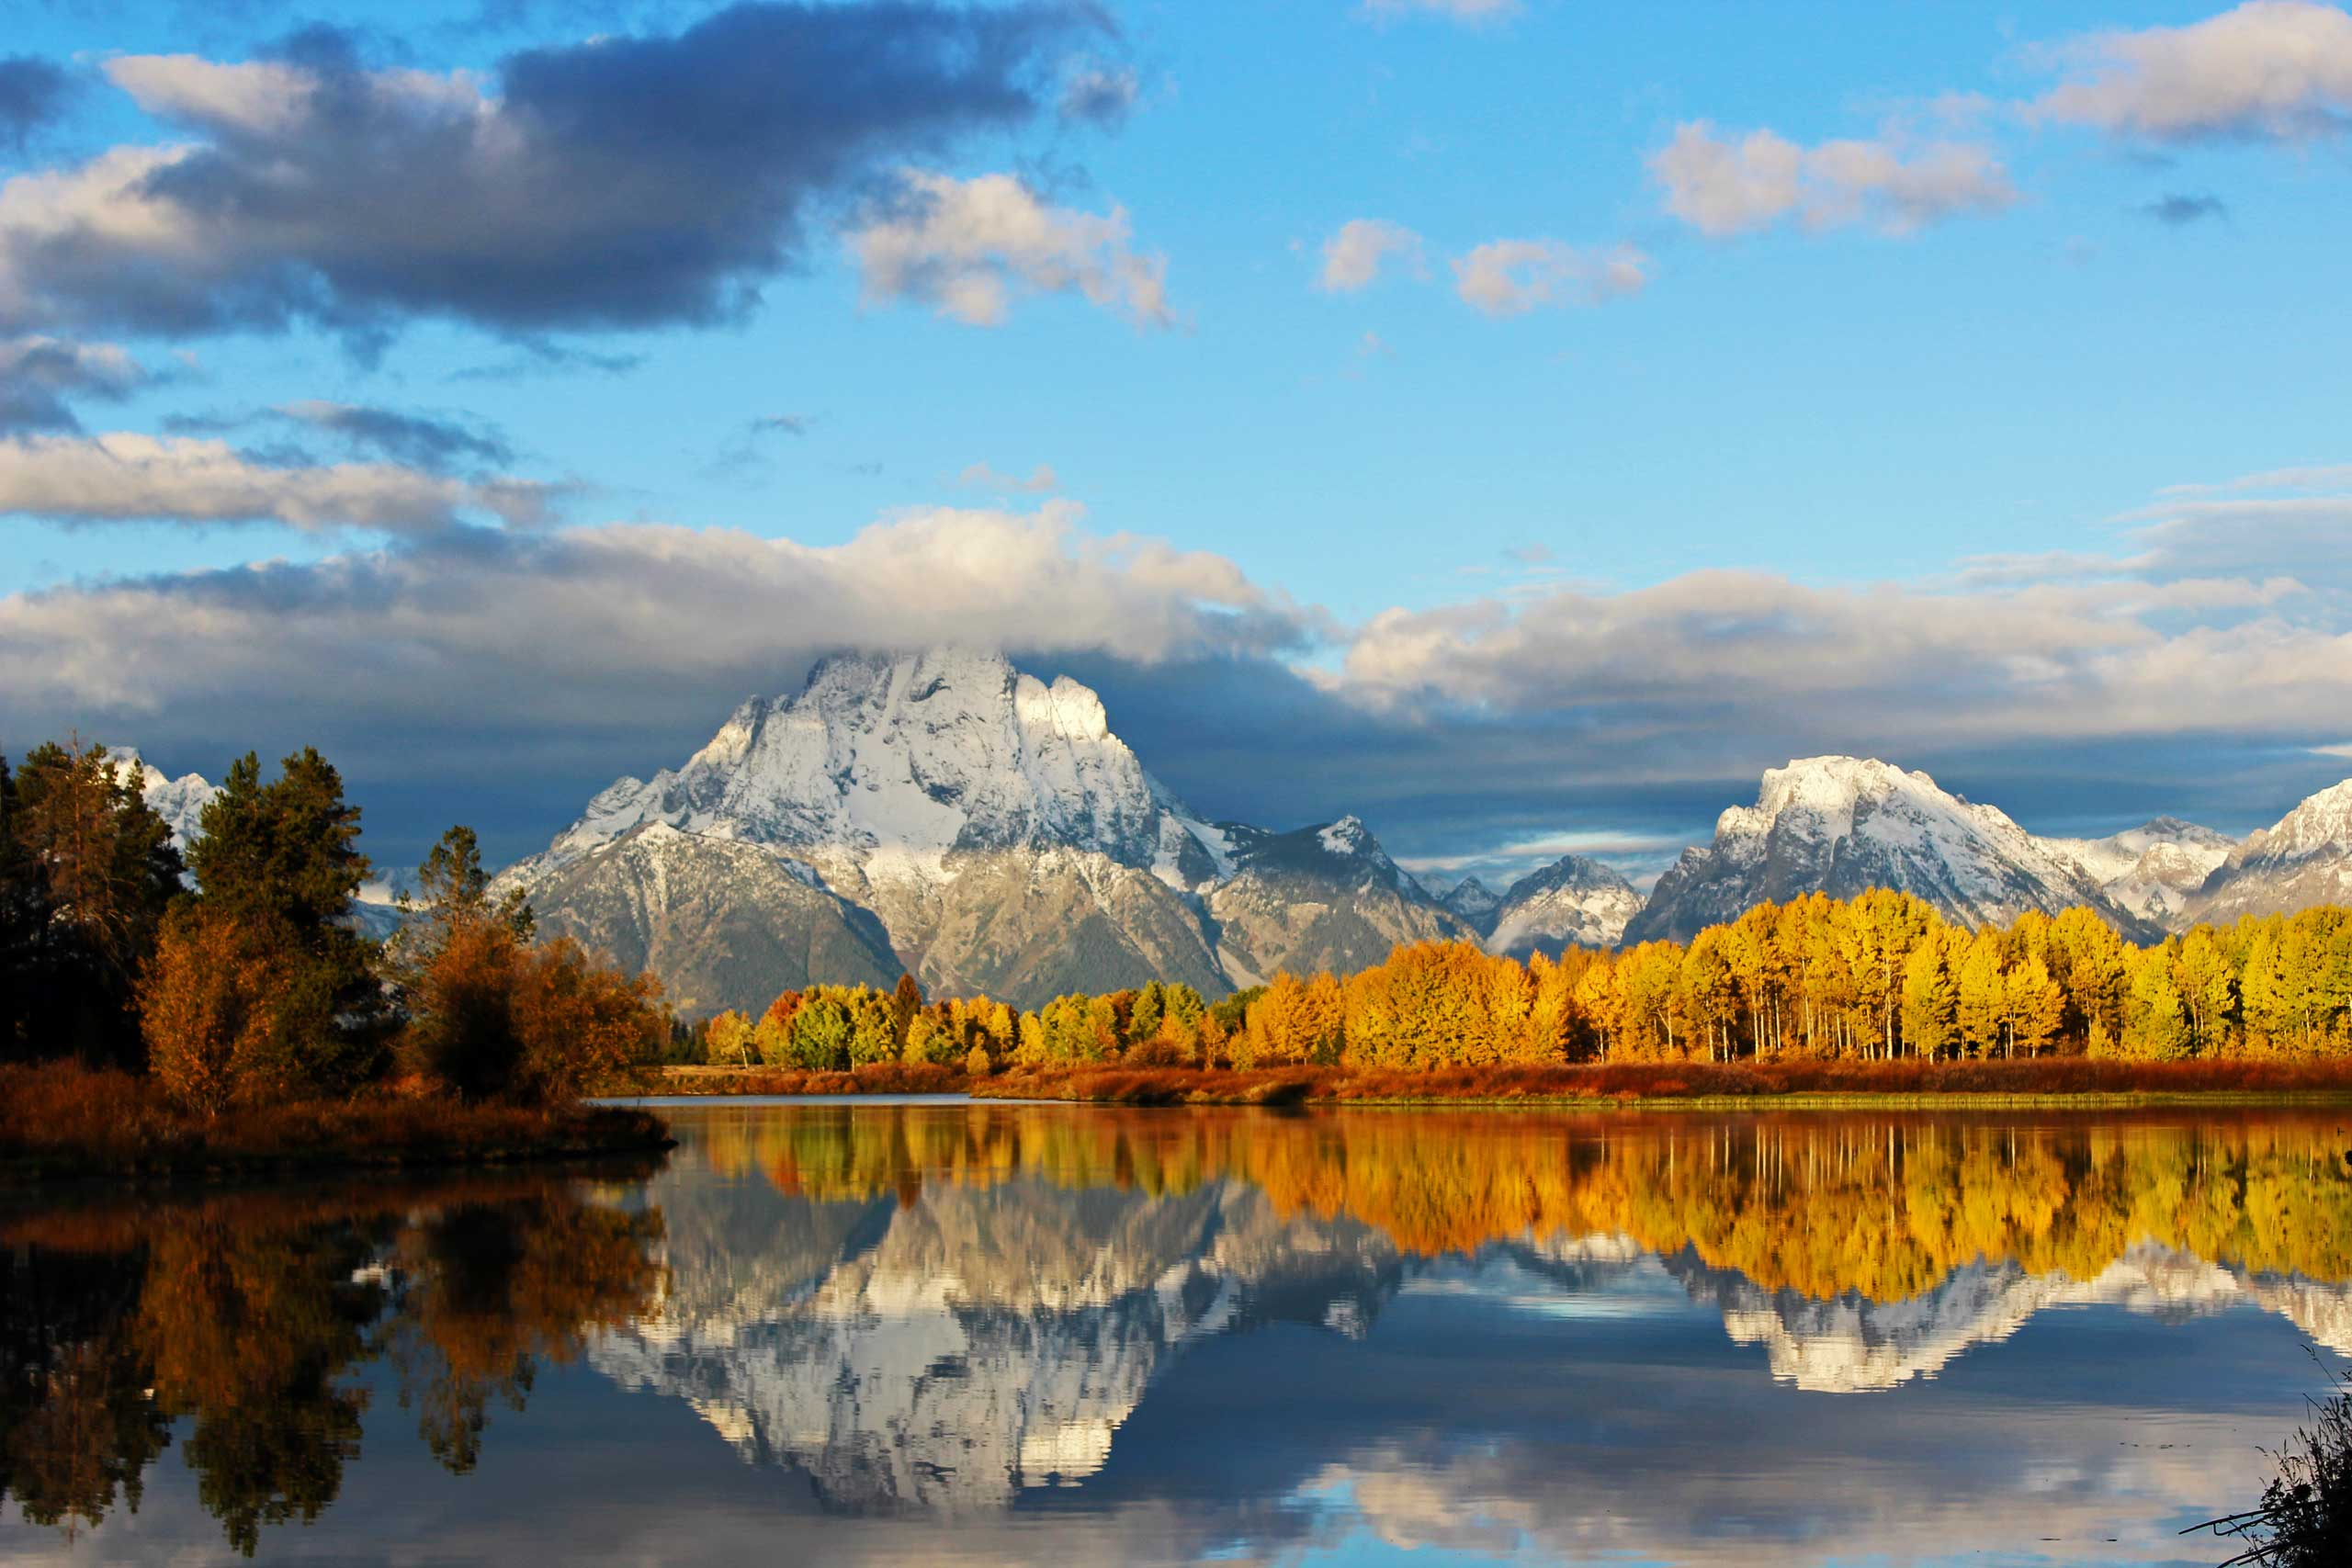 Our public lands give some of the most spectacular views, like this one of Grand Teton National Park in Wyoming